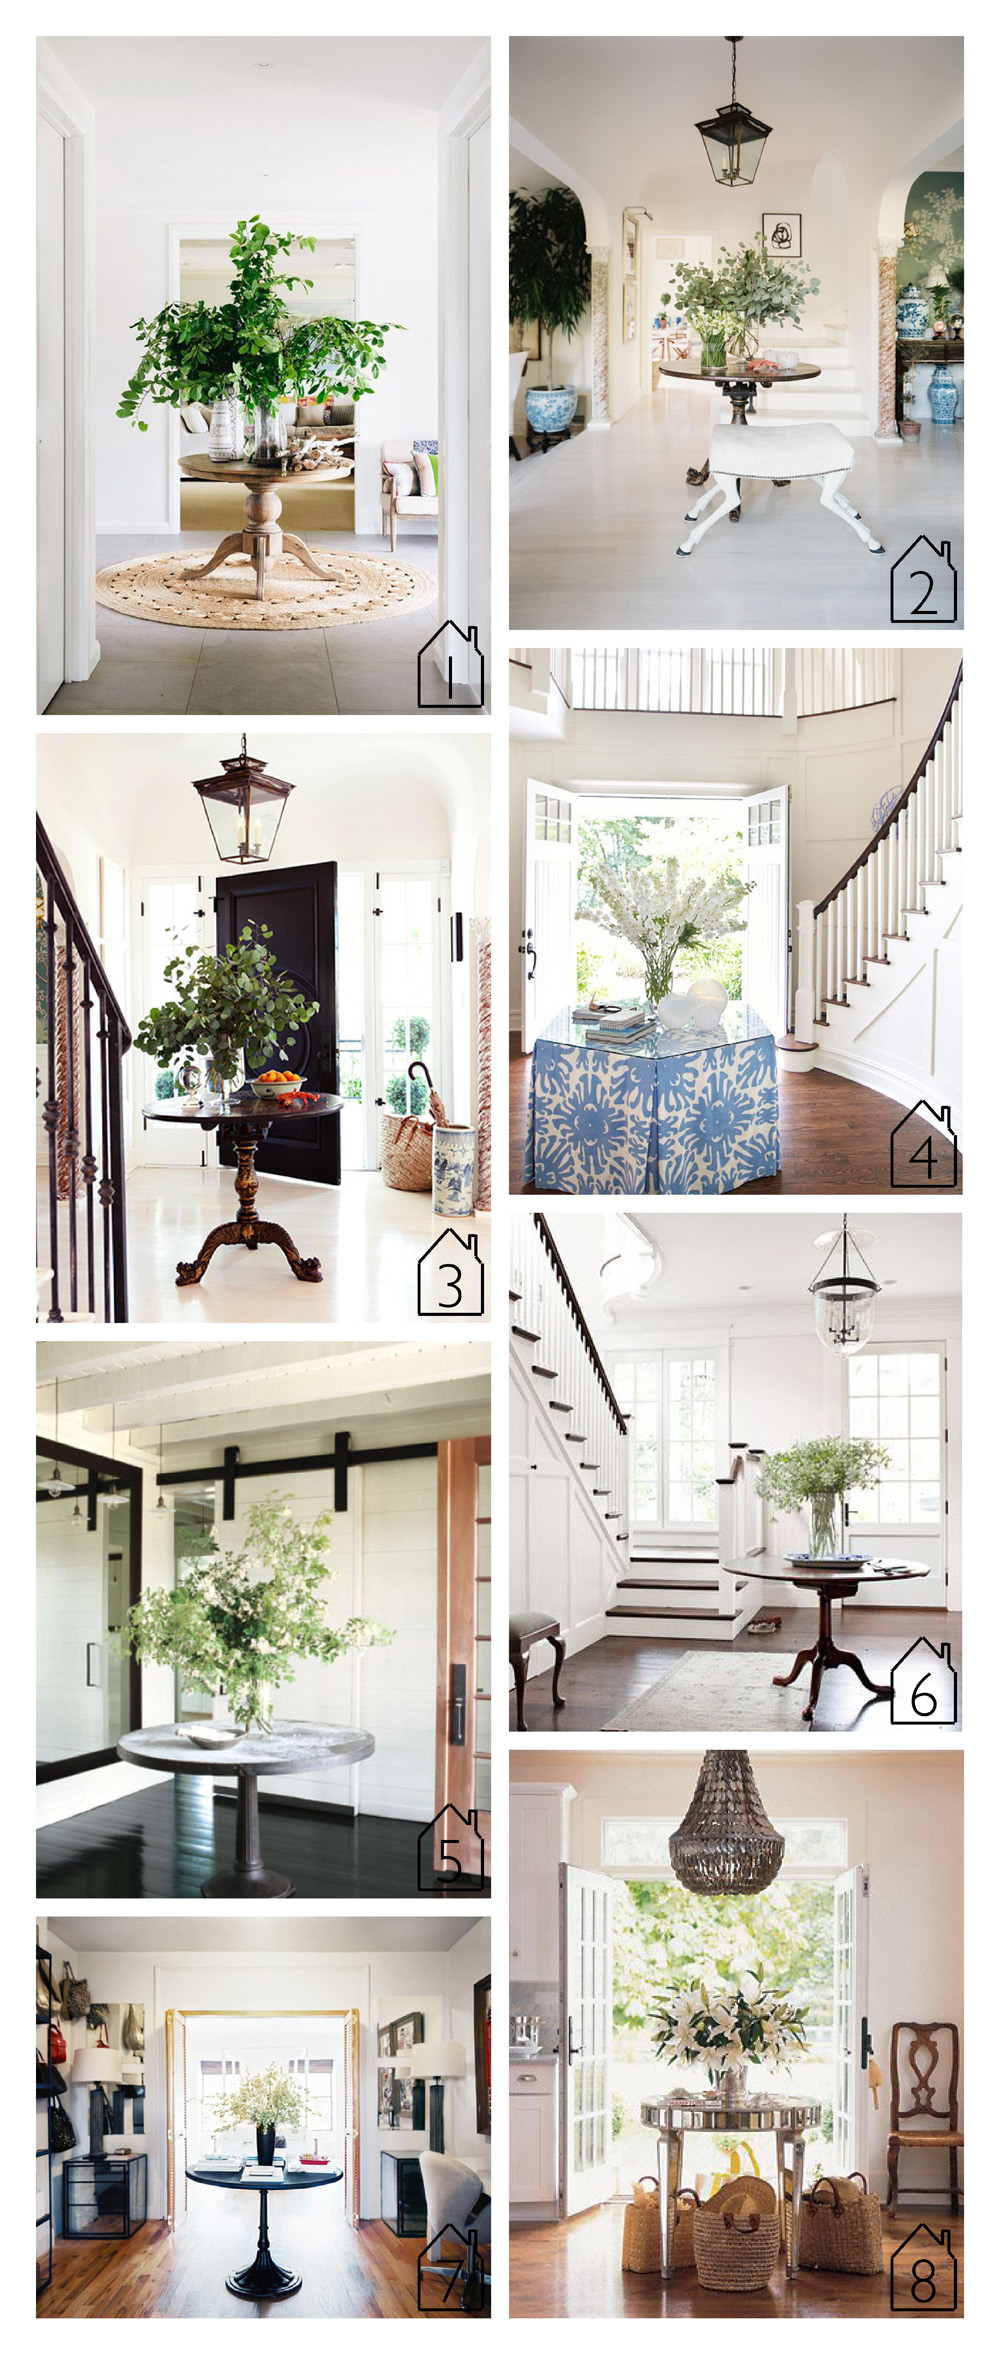 1. via  Marion House Book  2. via Lonny design by  Mark Sikes  and Michael Griffin  3. via  Domaine  design by  Mark Sikes   4. source unknown 5. Meg Ryan's Martha Vineyard home via  Elle Decor   6. source unknown  7. via  Lonny   8. Chris Cuomo's Cape Cod home via  Elle Decor  design by  Emma Pilkington